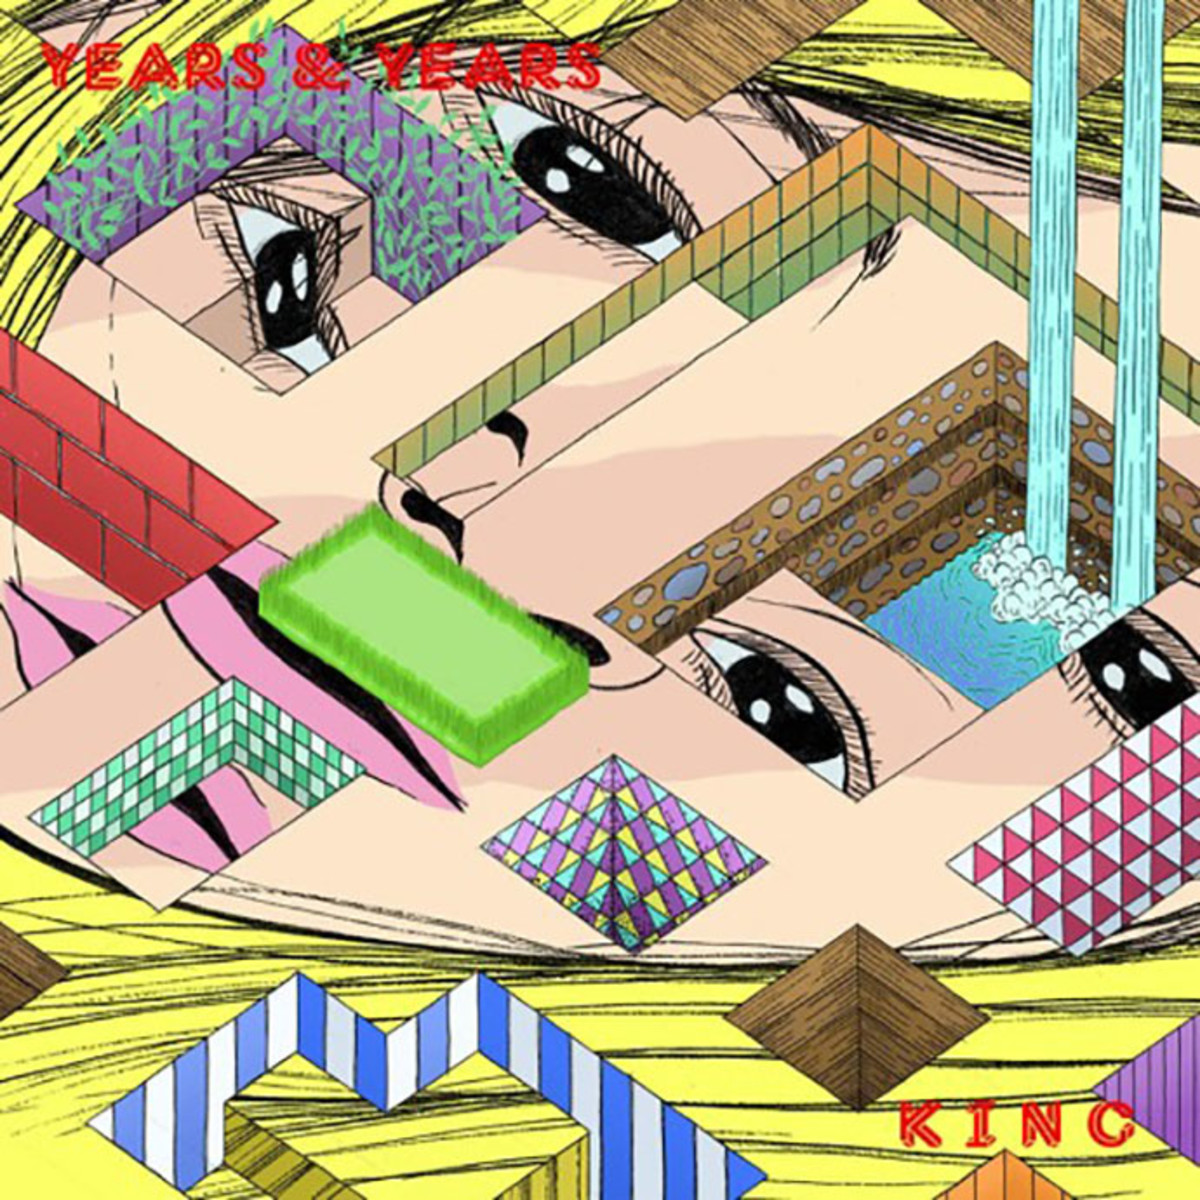 Years & Years - King (Milo Mills Remix)